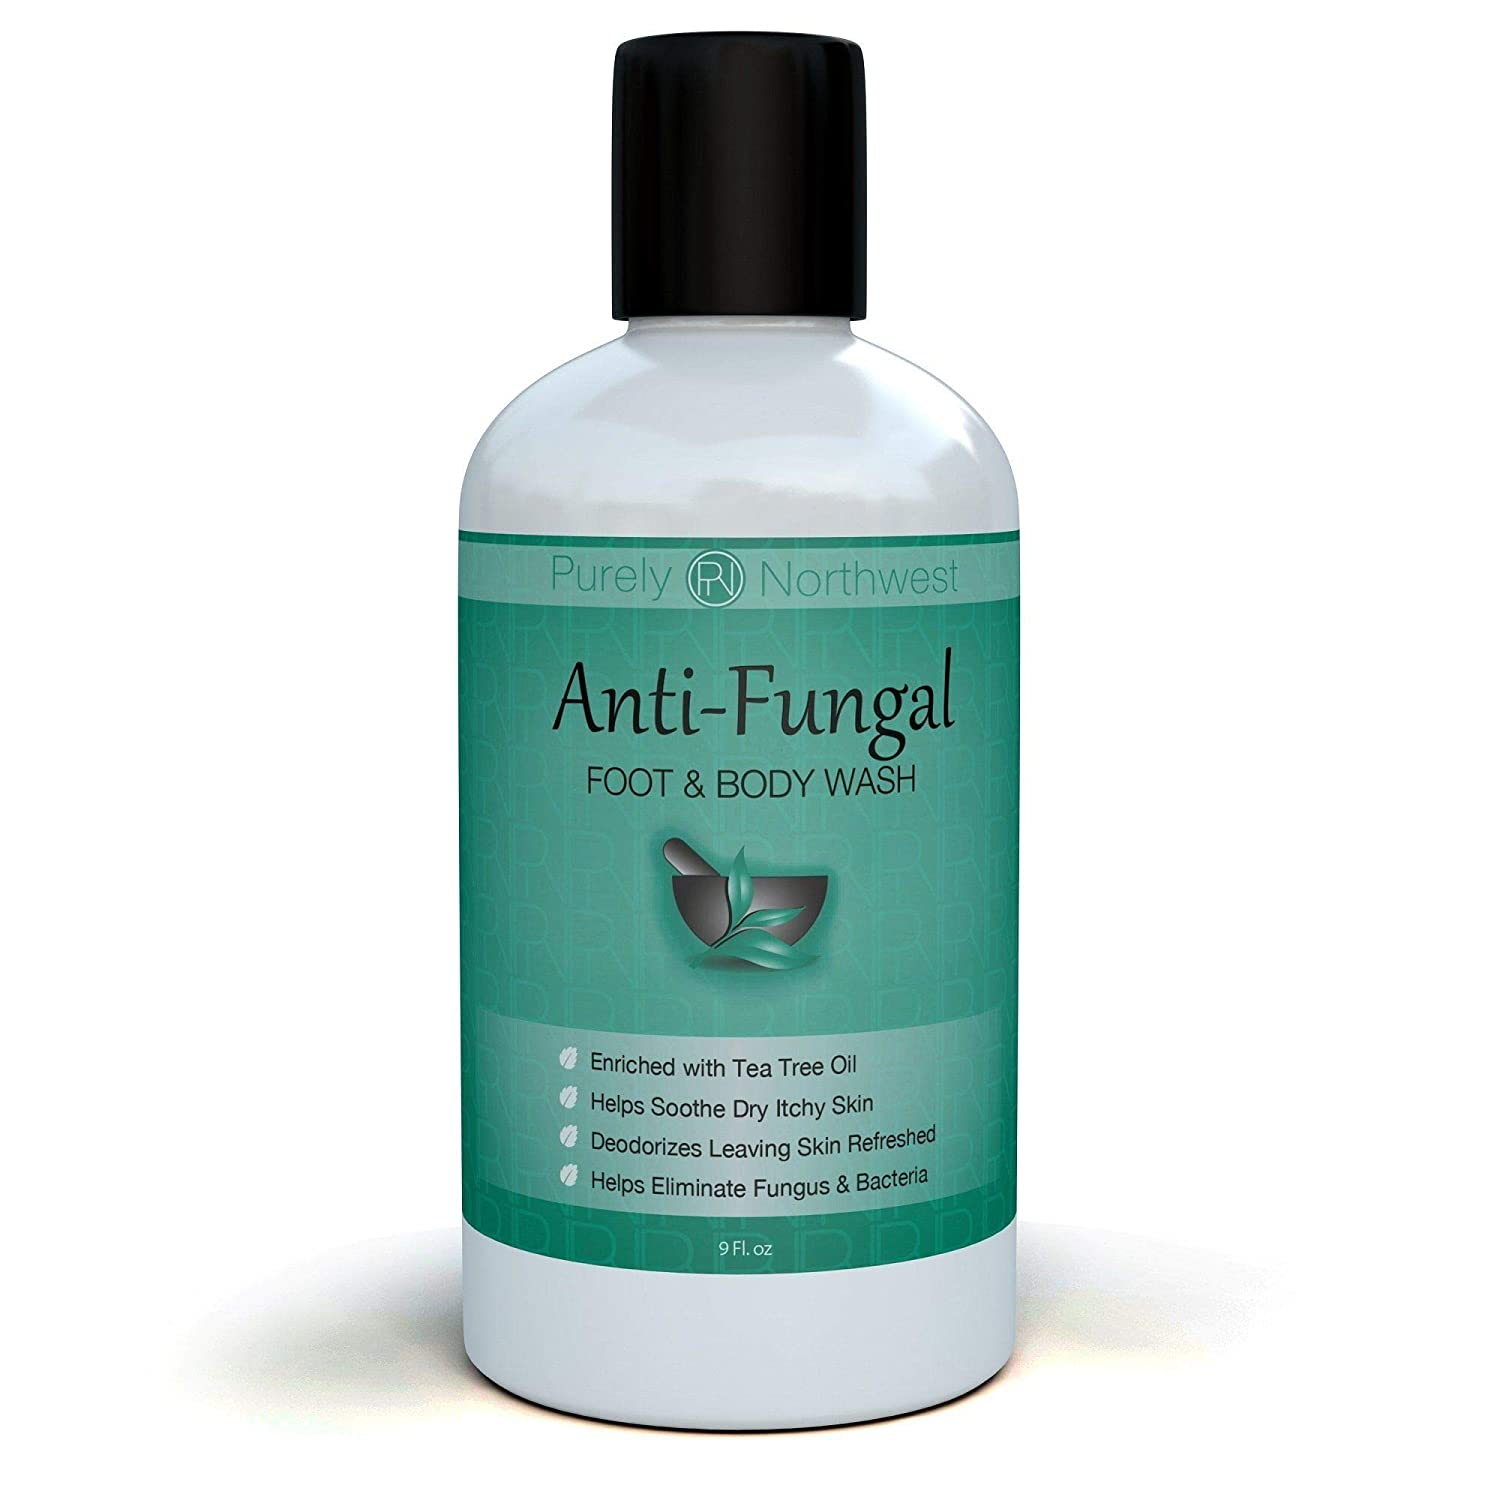 Antifungal Soap with Tea Tree Oil, Helps Treat & Wash Away Athletes Foot, Ringworm, Nail Fungus, Jock Itch, Body Odor & Acne. Antibacterial Defense Against Common Fungal and Bacteria Related Skin Irritations 9oz. Purely Northwest